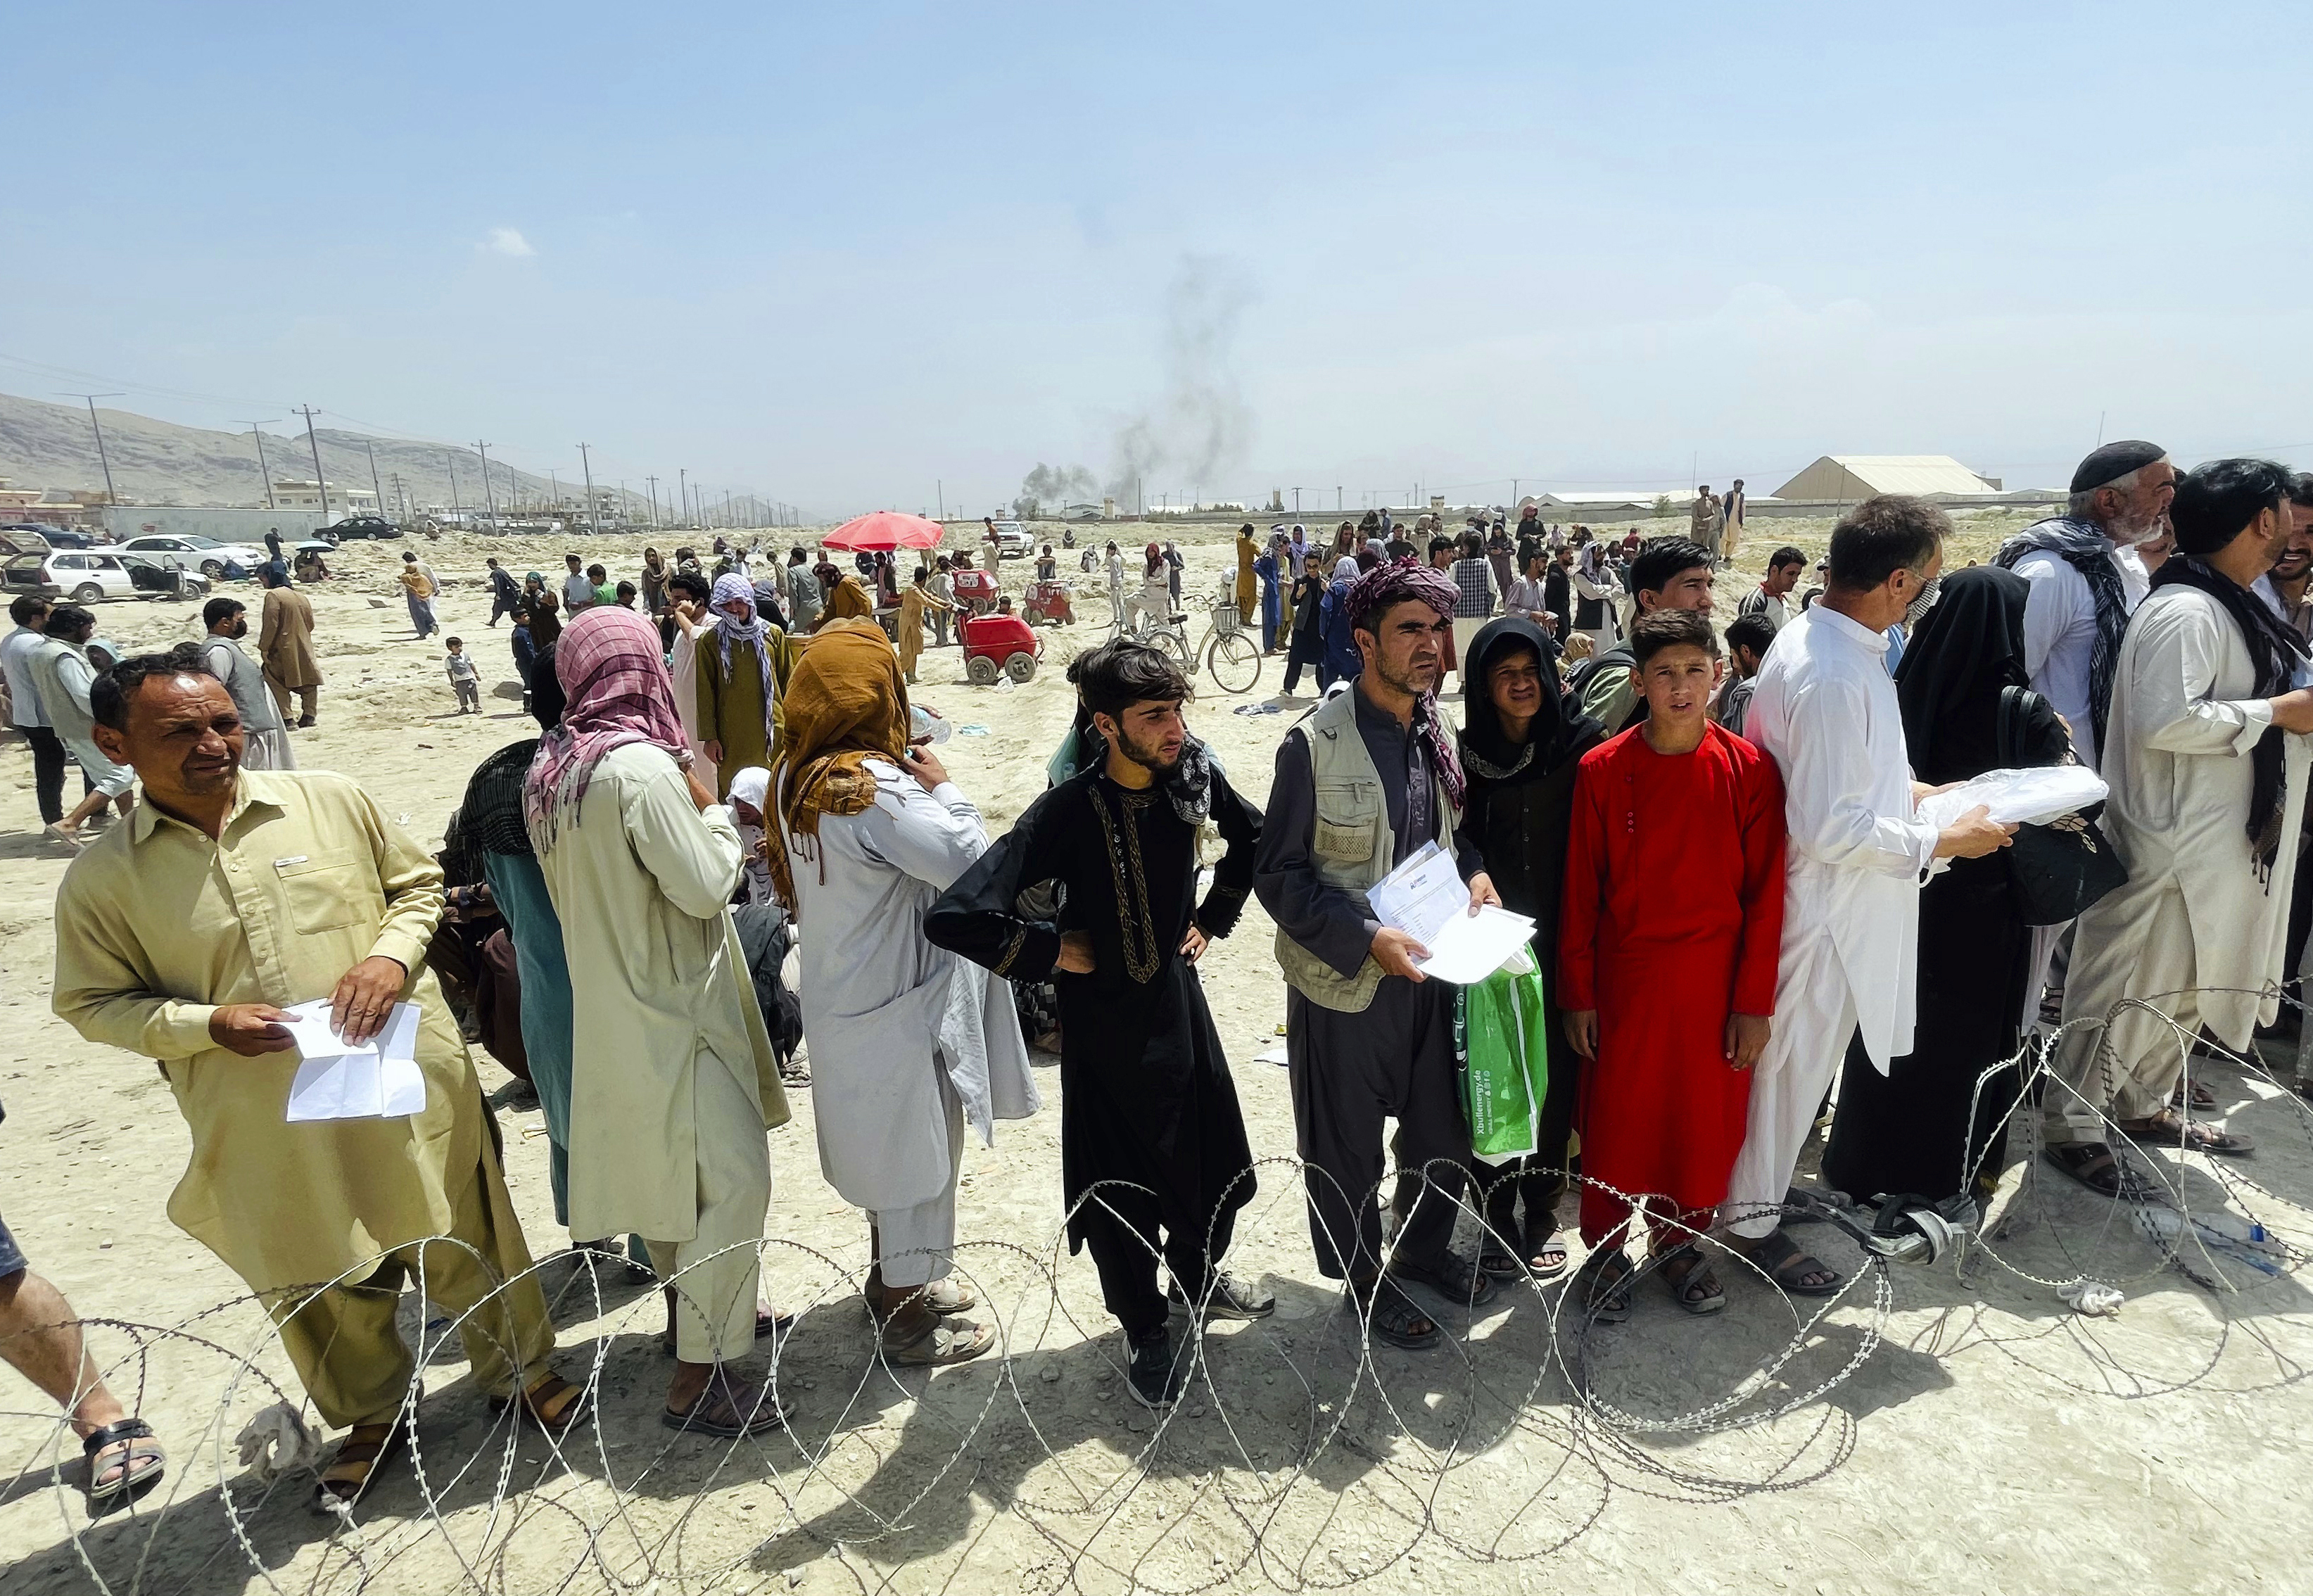 Hundreds of Afghans gather outside the airport in Kabul, Afghanistan, hoping to leave their country.